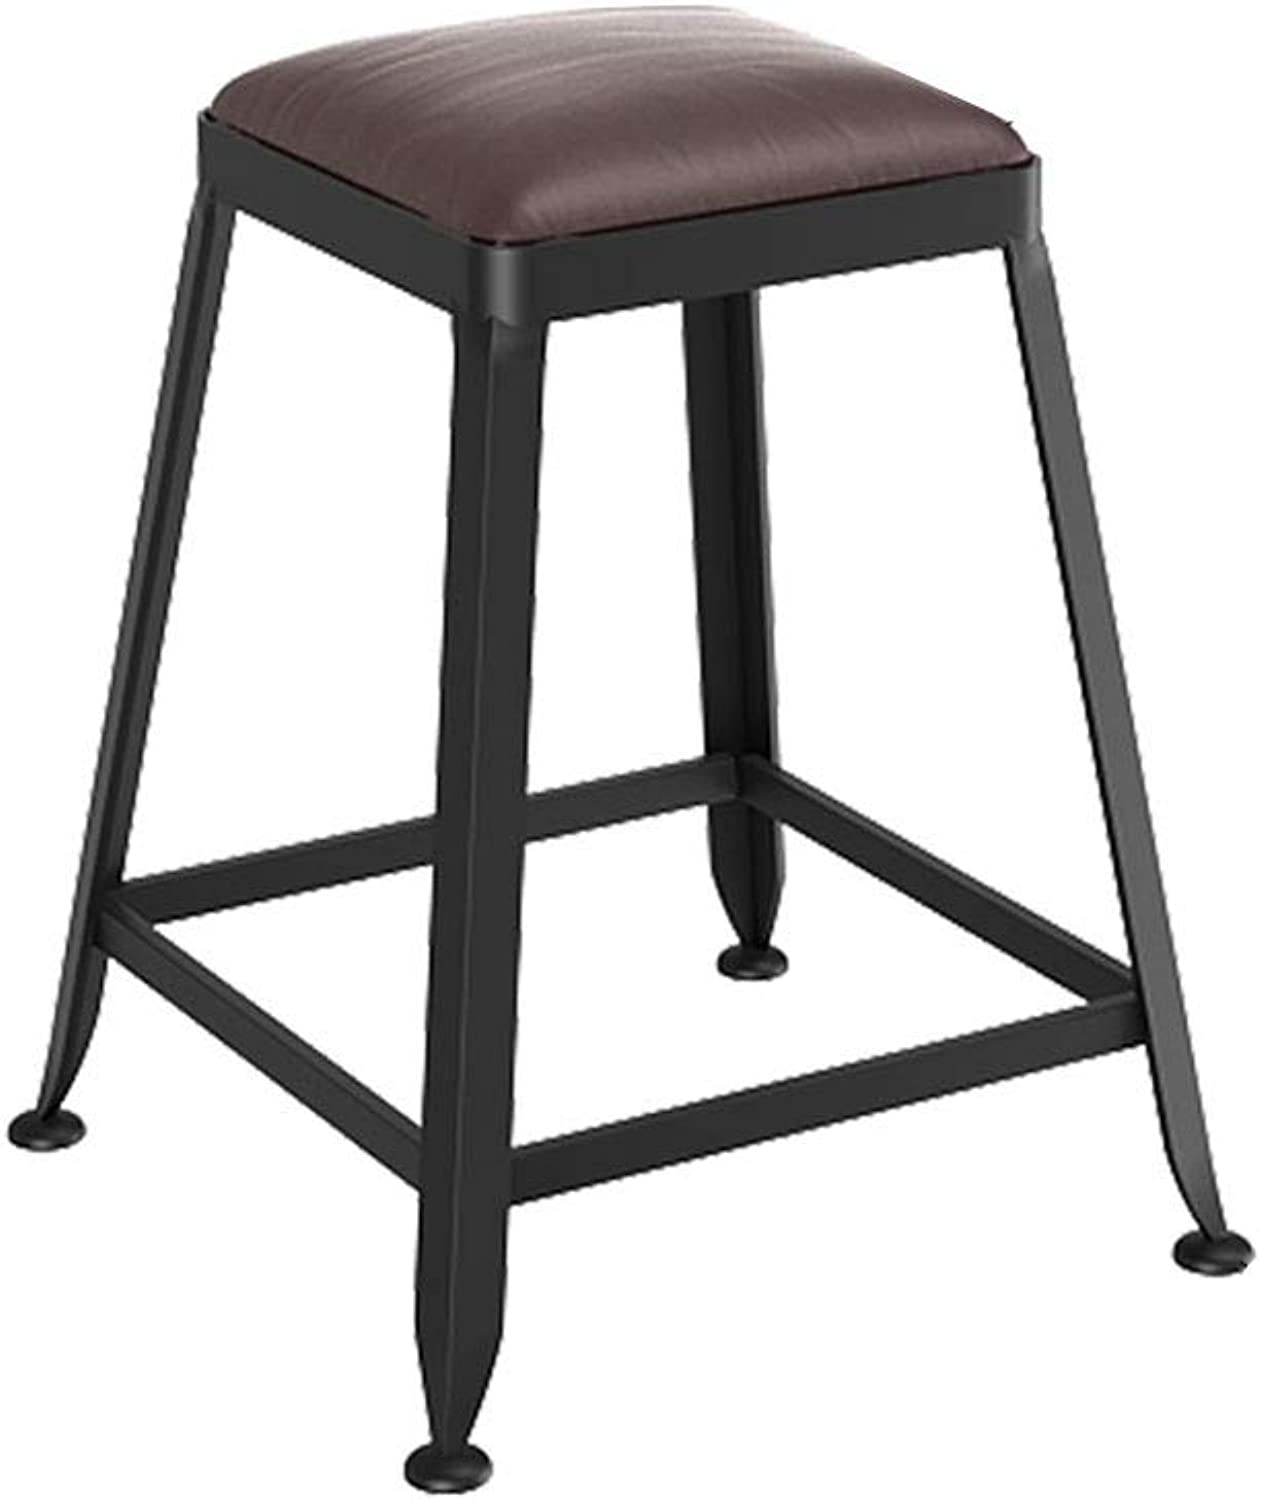 MEIDUO Chairs Bar Stool Iron Art Solid Wood Seat Padded Industrial Style Bar Chair High Stool for Counter Pub Kitchen - Backrest, Height Optional (color   B-No Backrest, Size   45cm)